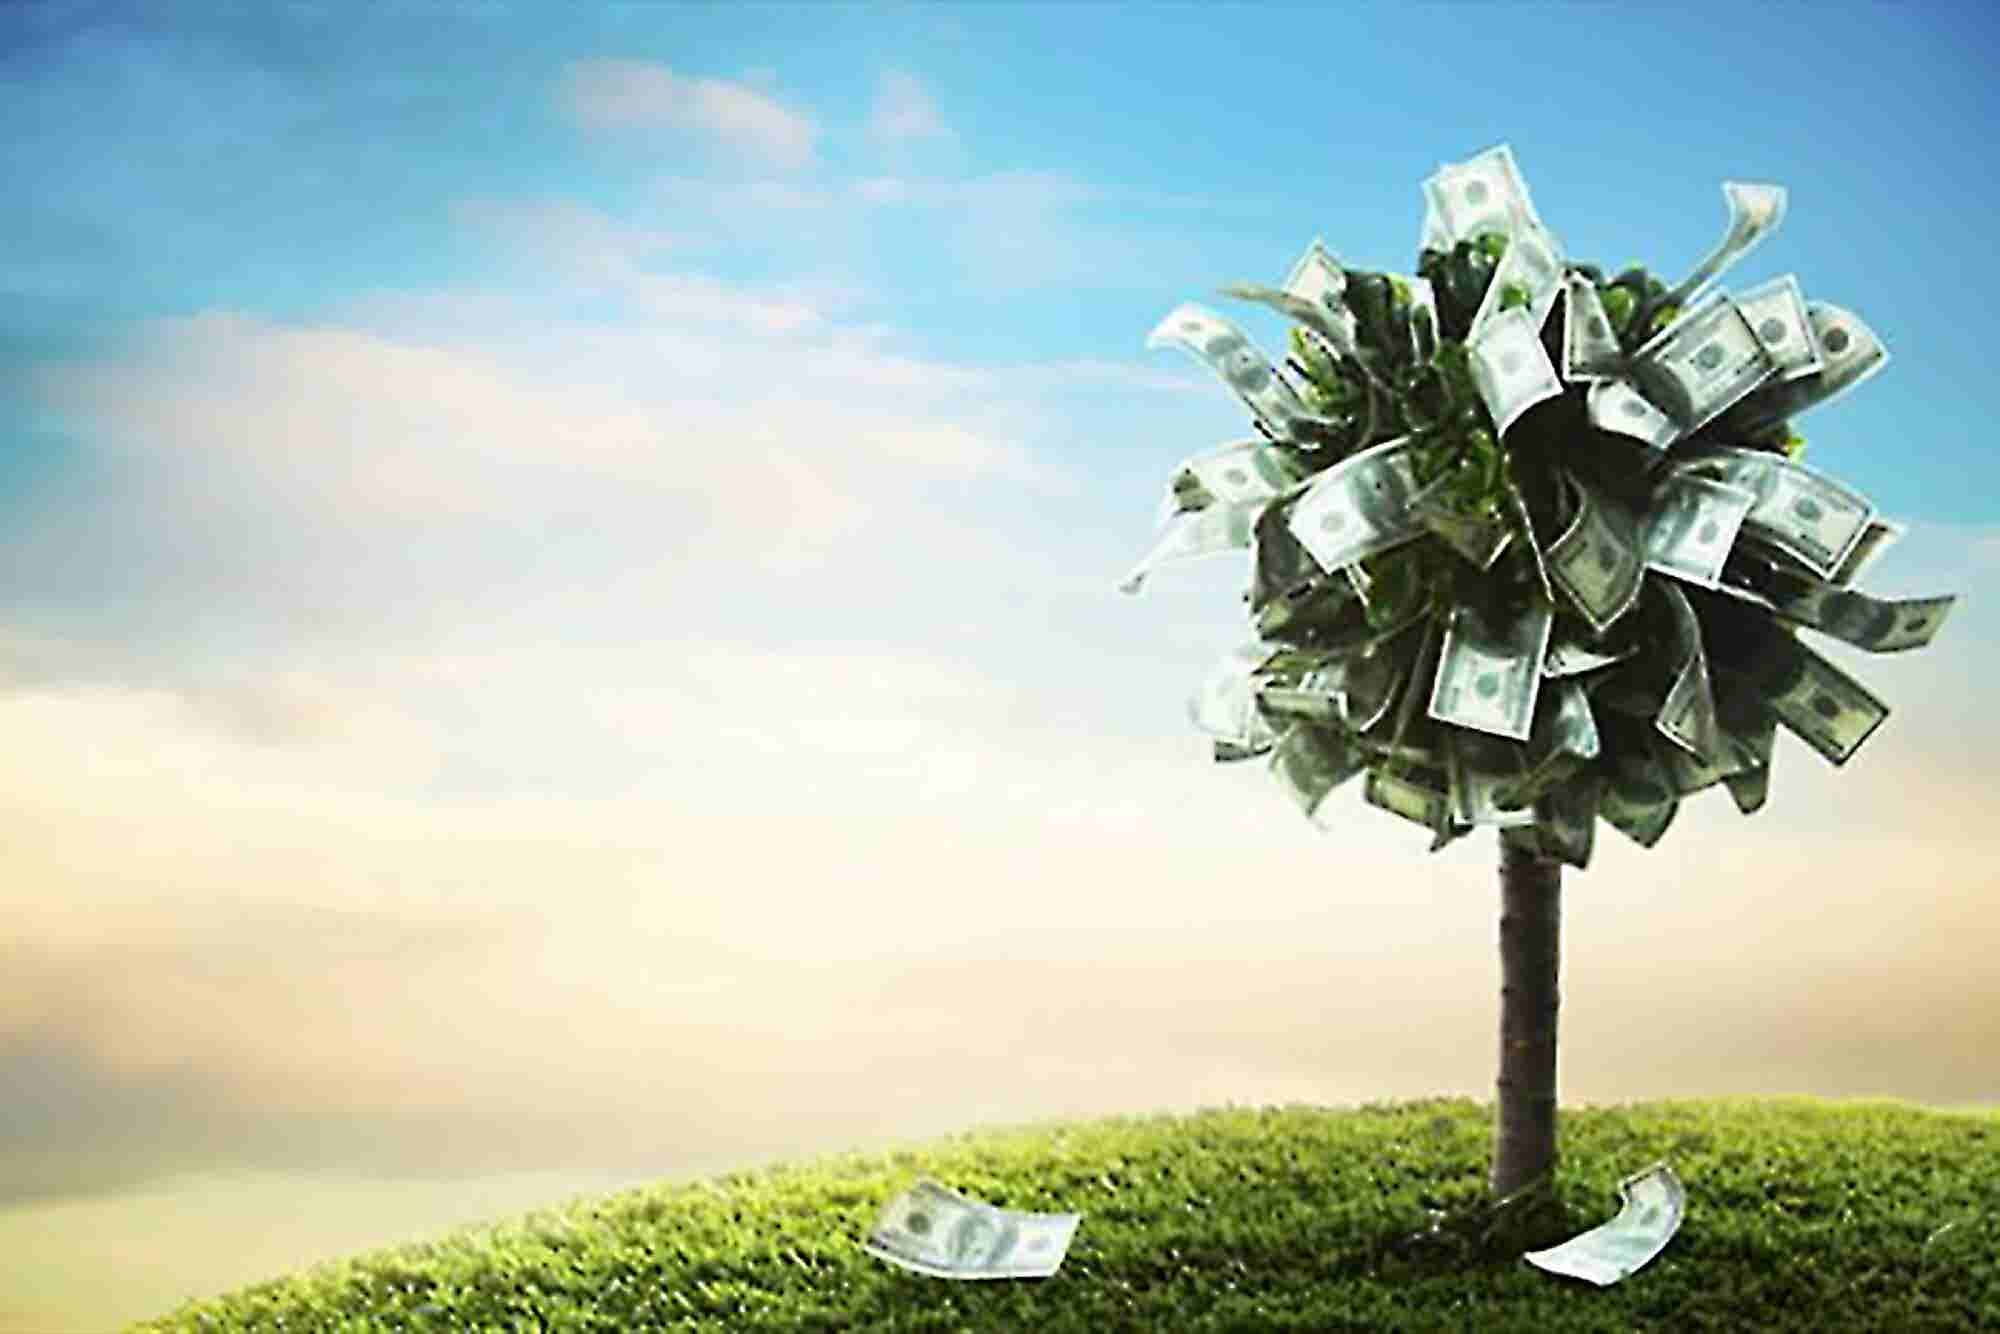 What's Behind Every Great Crowdfunding Campaign?